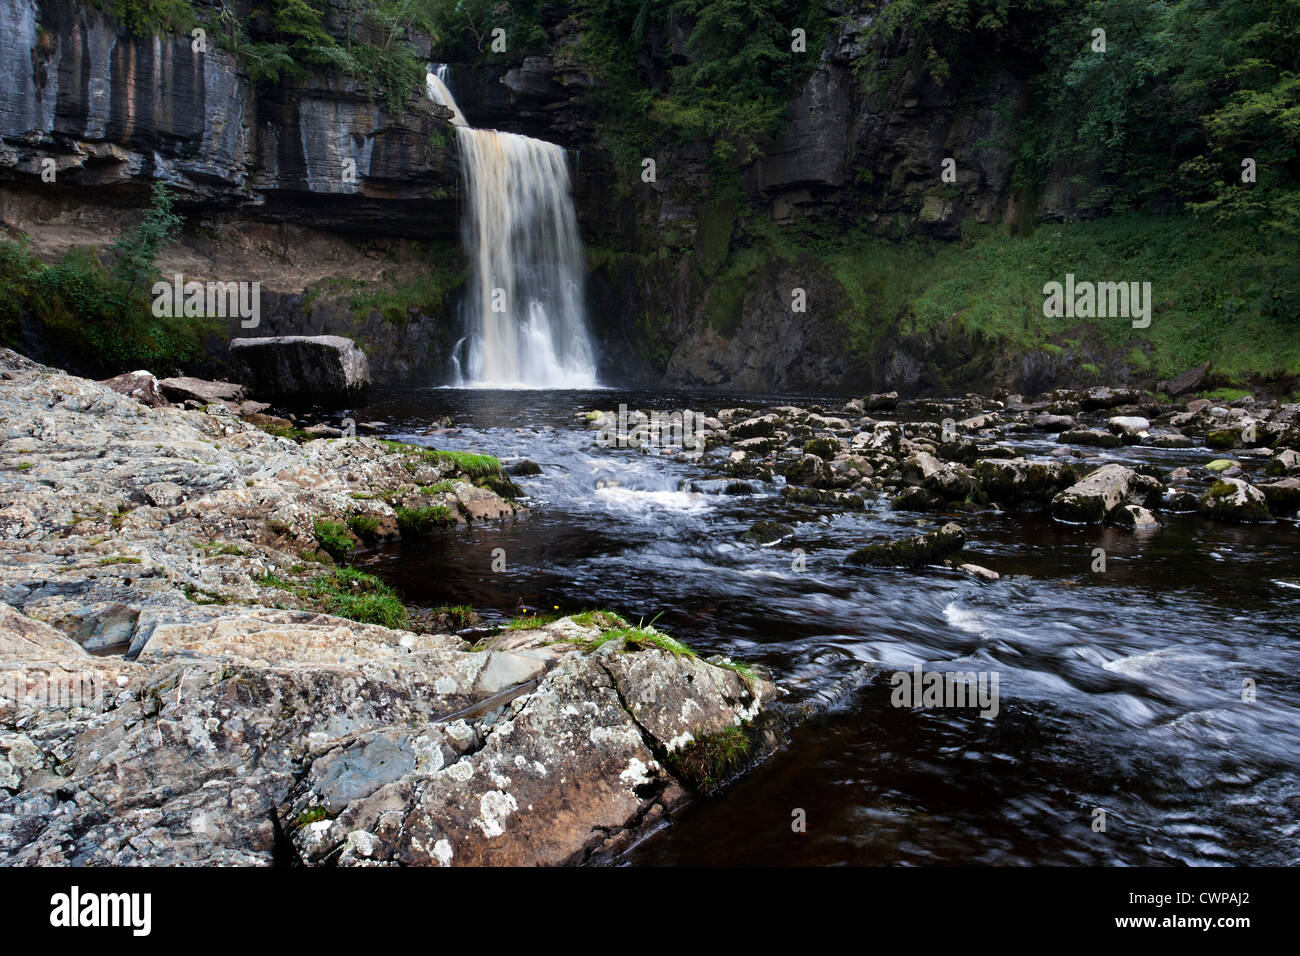 Cascading water at Thornton Force, Ingleton, North Yorkshire - Stock Image